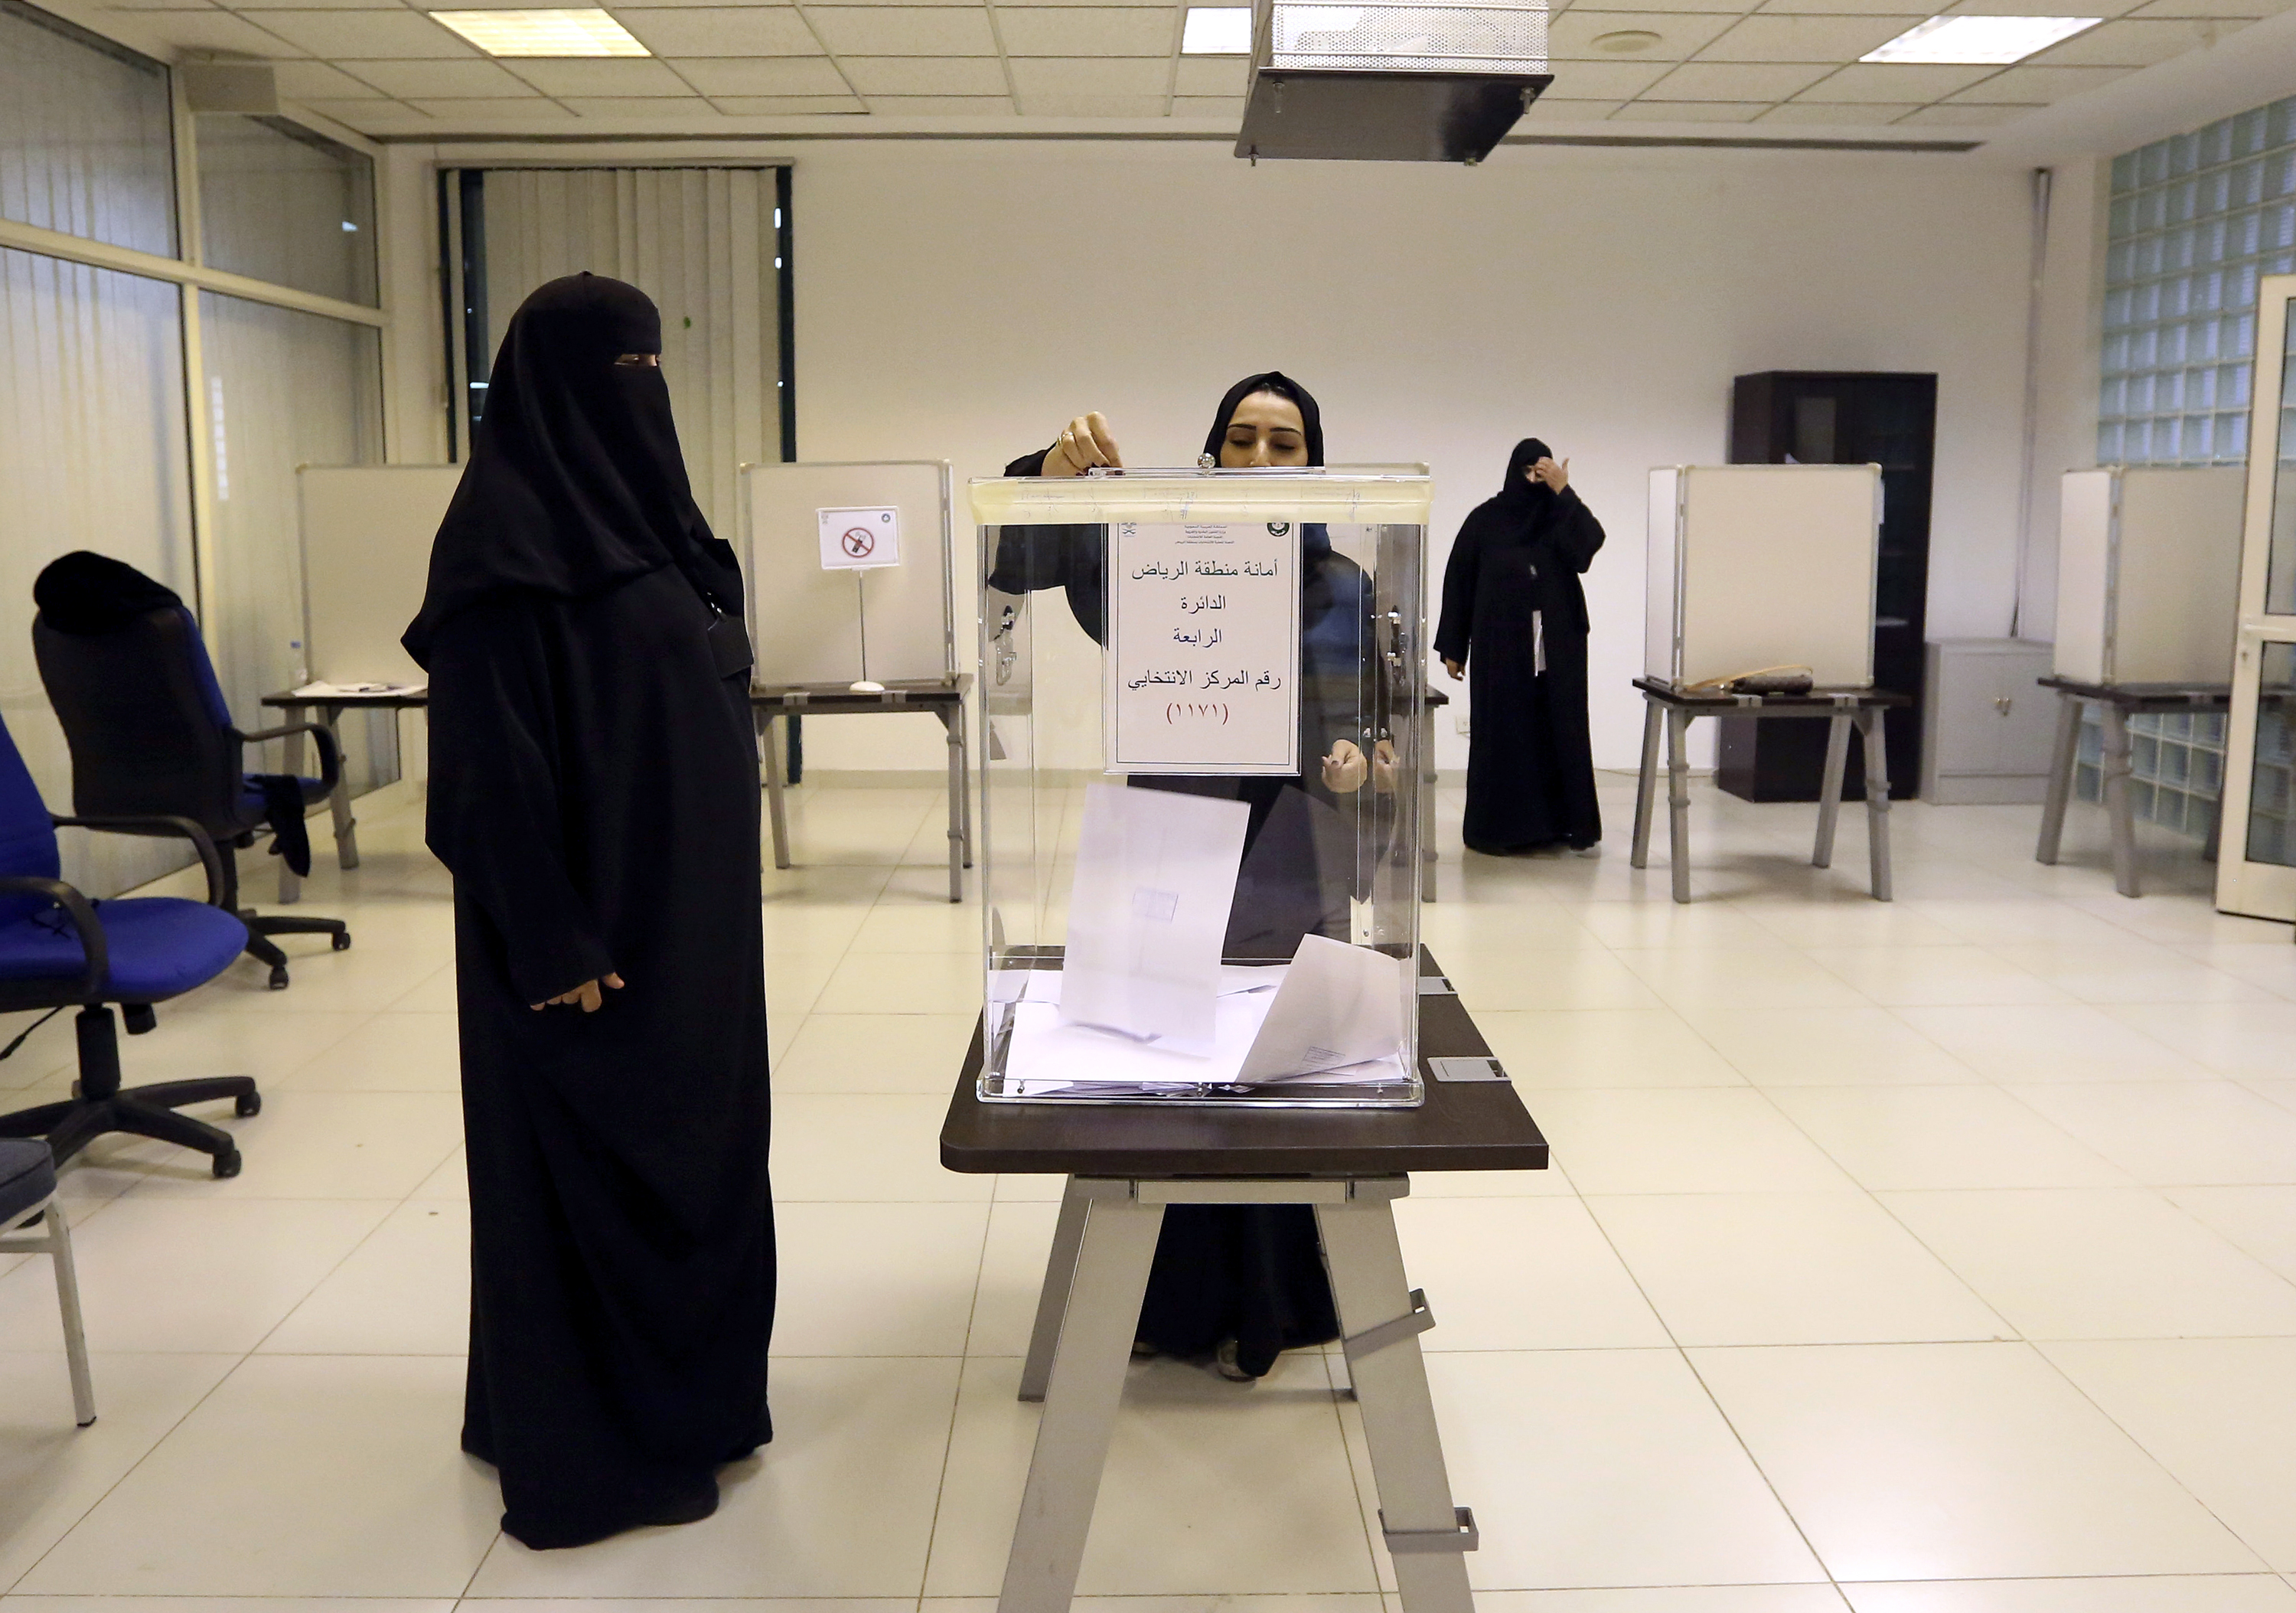 Saudi women vote in Riyadh, Saudi Arabia